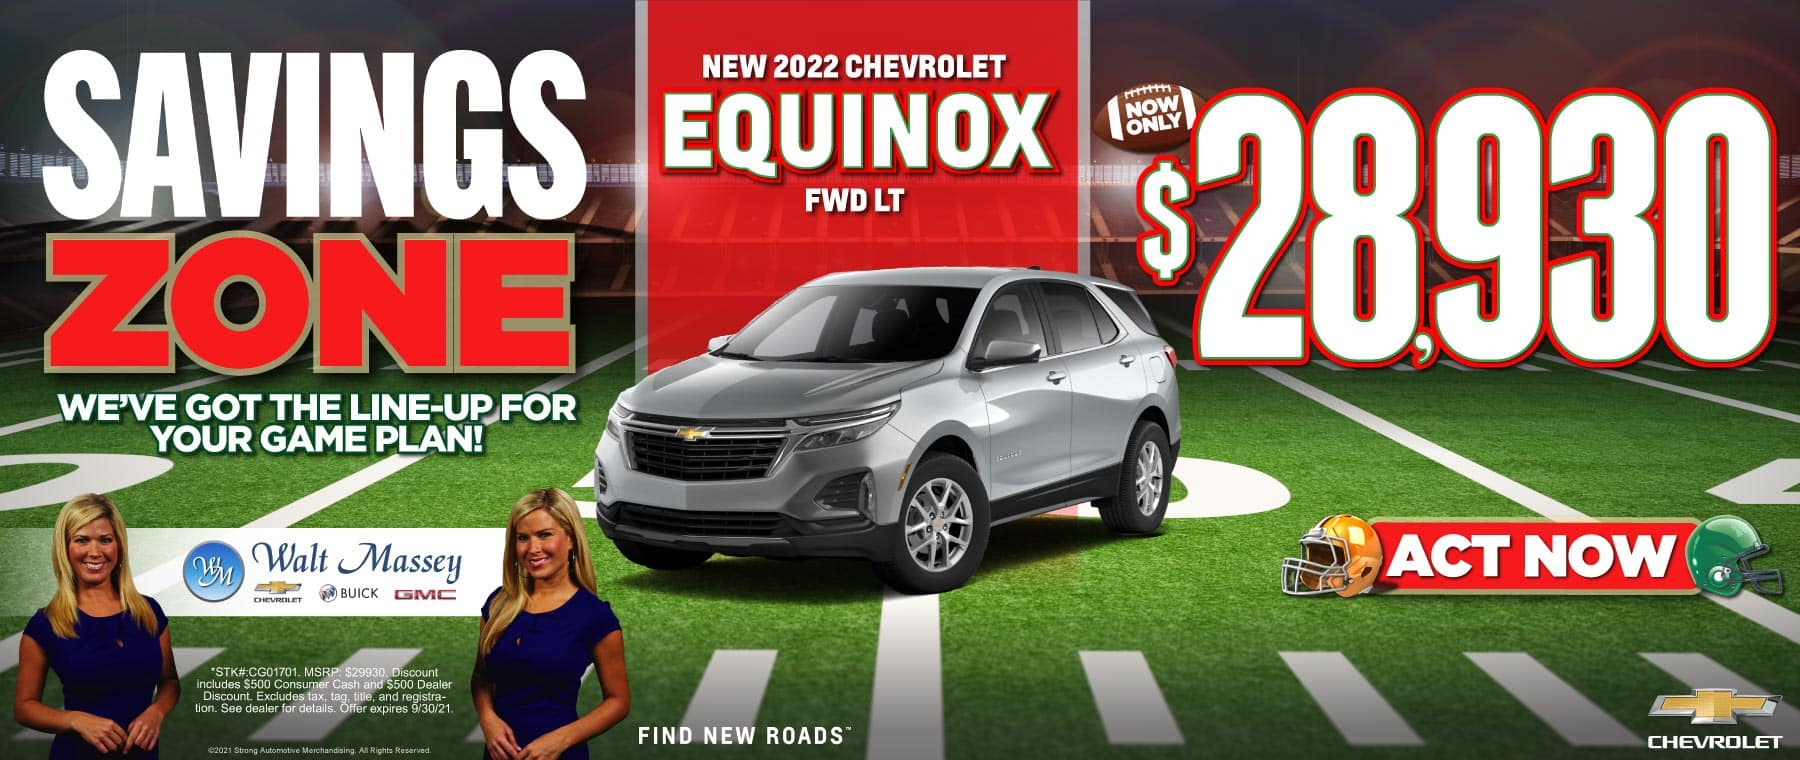 New 2022 Chevrolet Equinox FWD LT   Now Only $28,930   ACT NOW